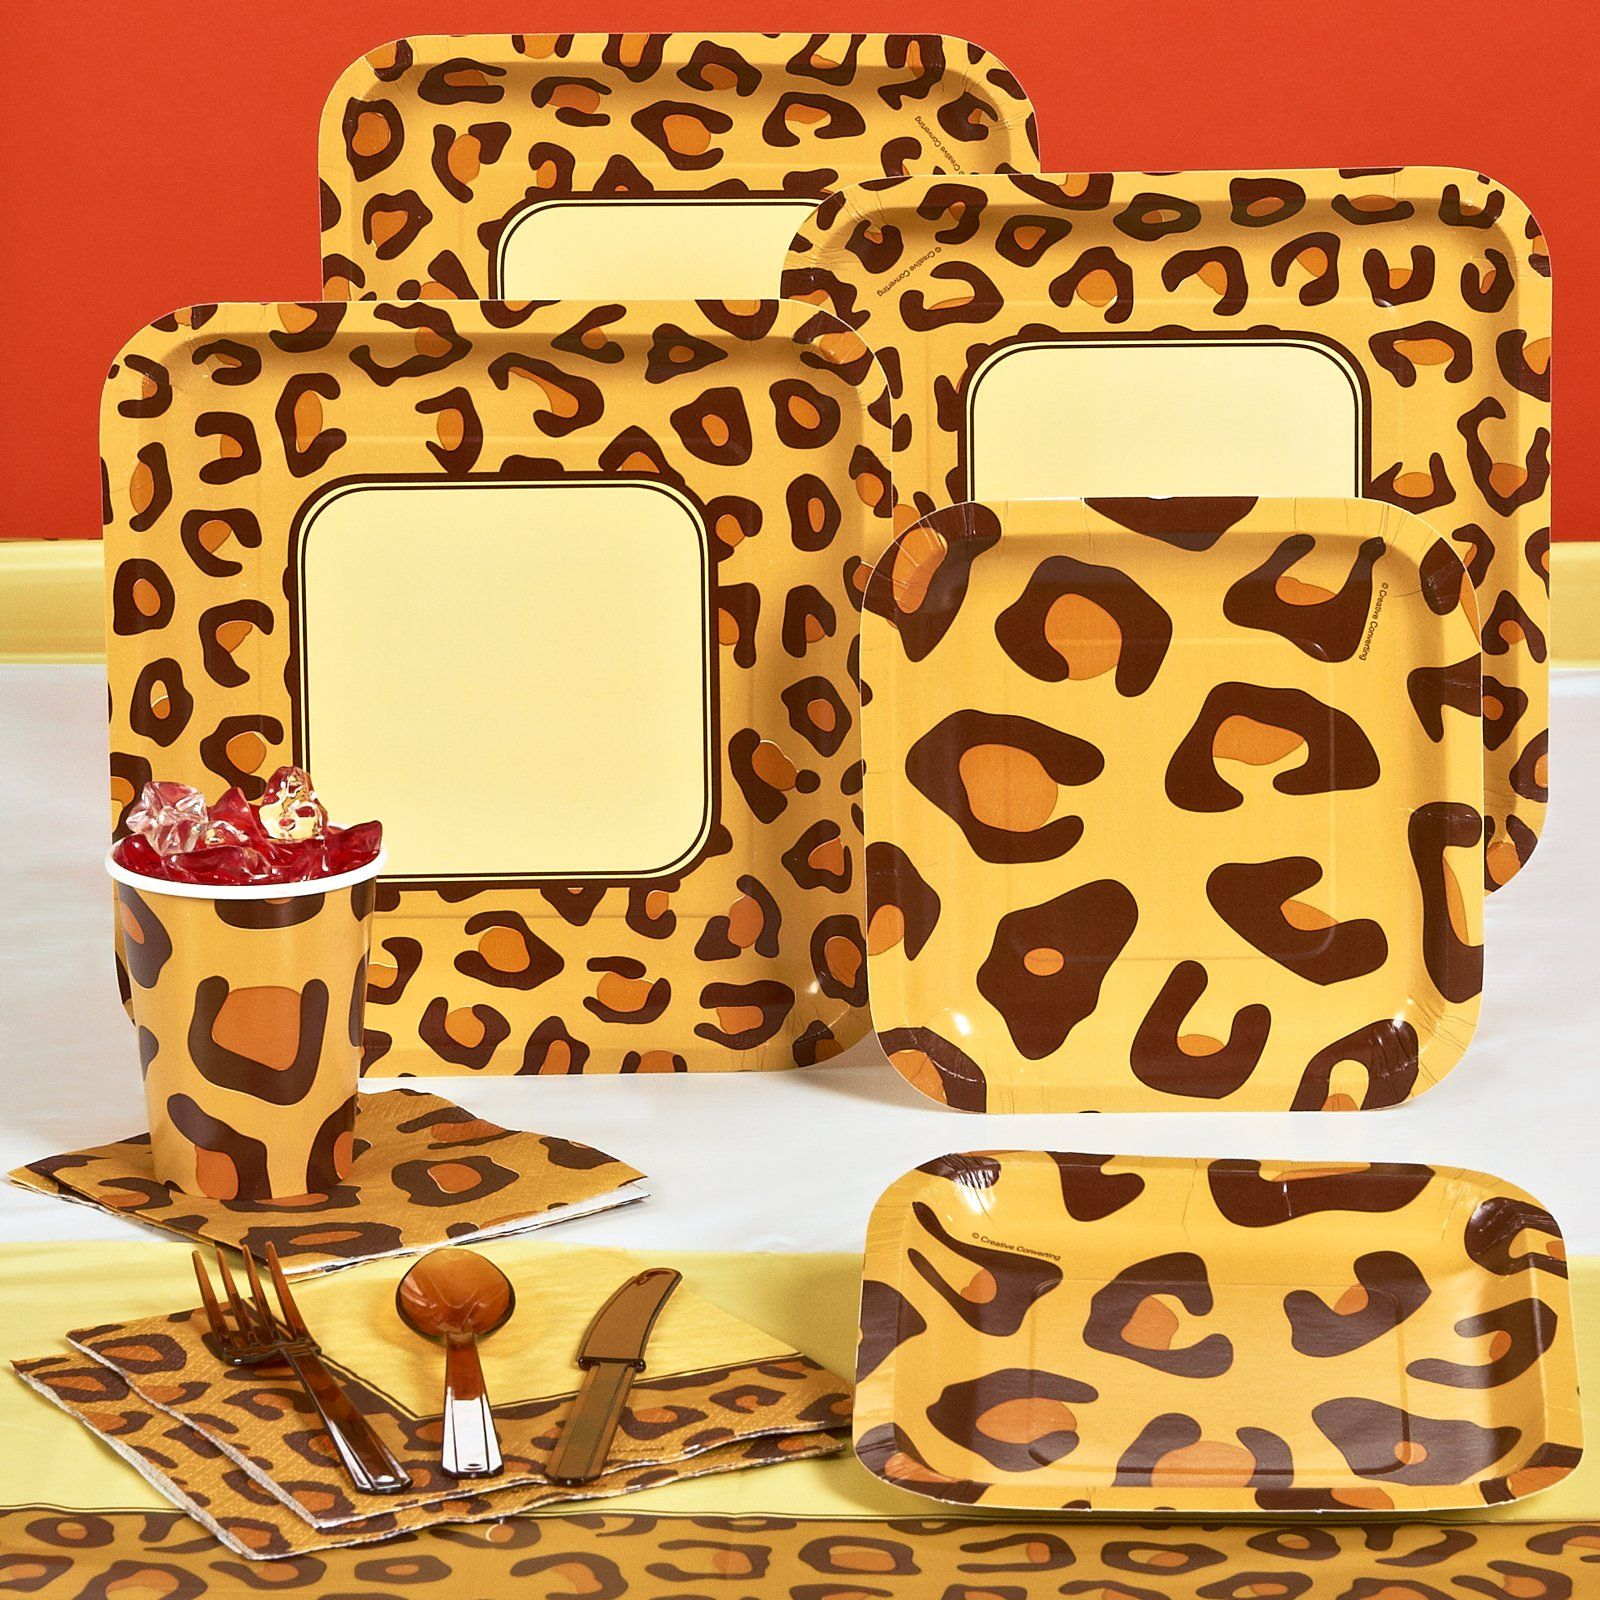 Leopard Print Party Decorations Hello Kitty Leopard Print Birthday Decorations Zebra Print Theme